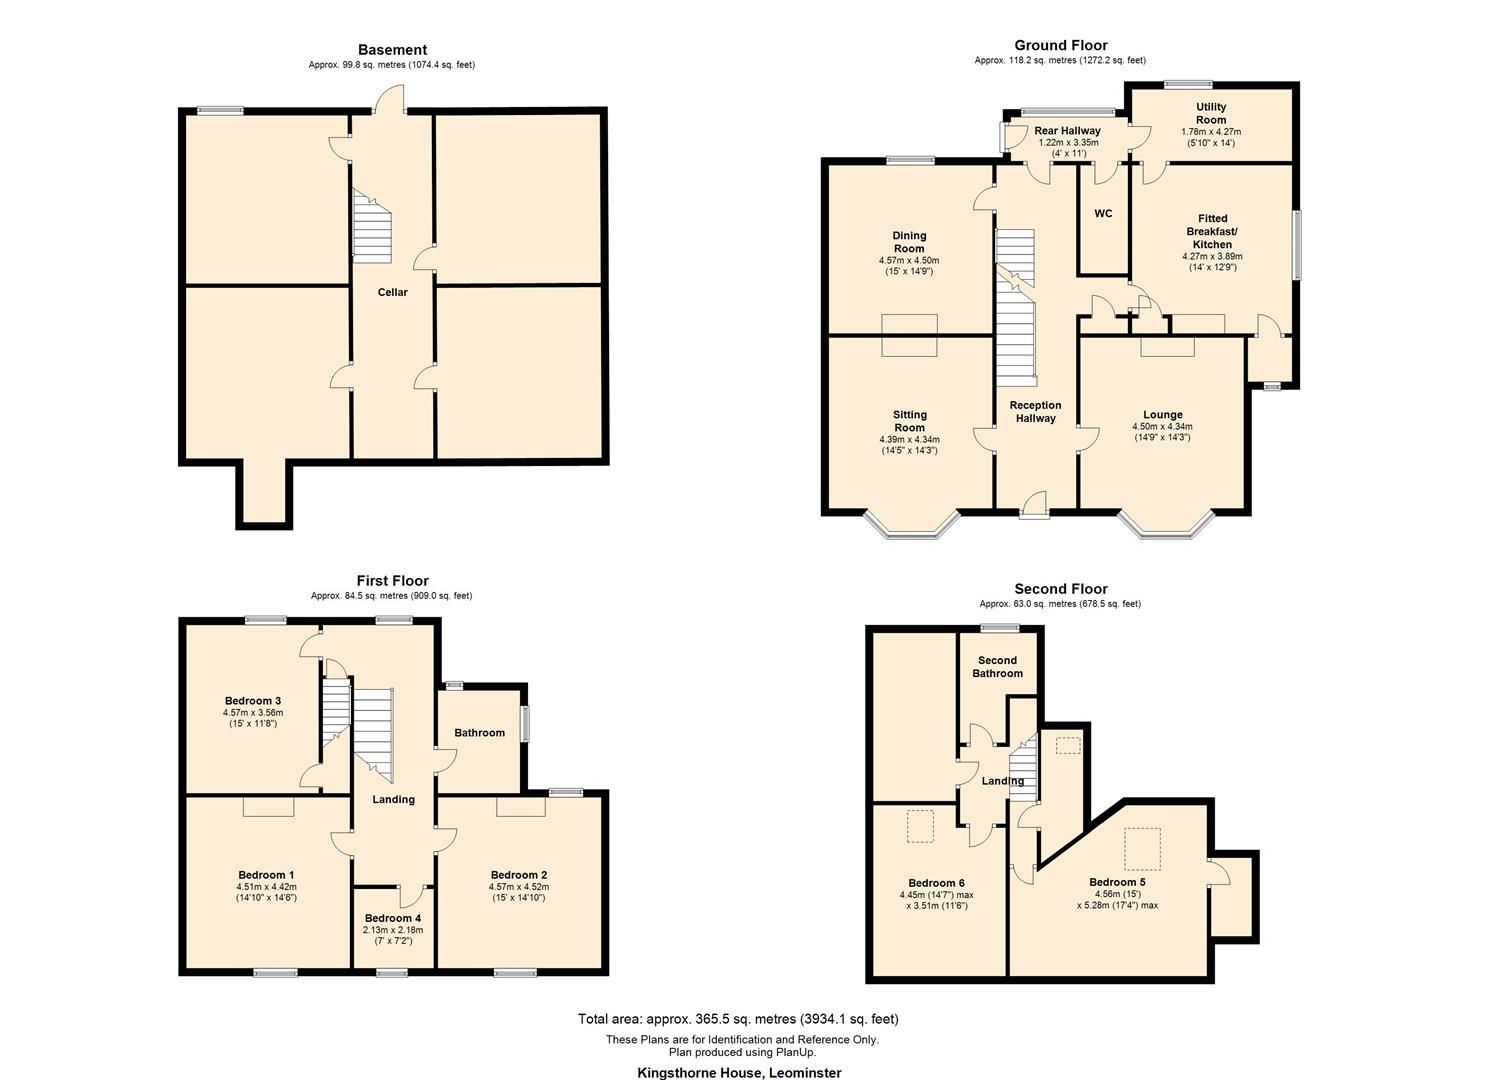 6 bed semi-detached for sale in Leominster - Property Floorplan